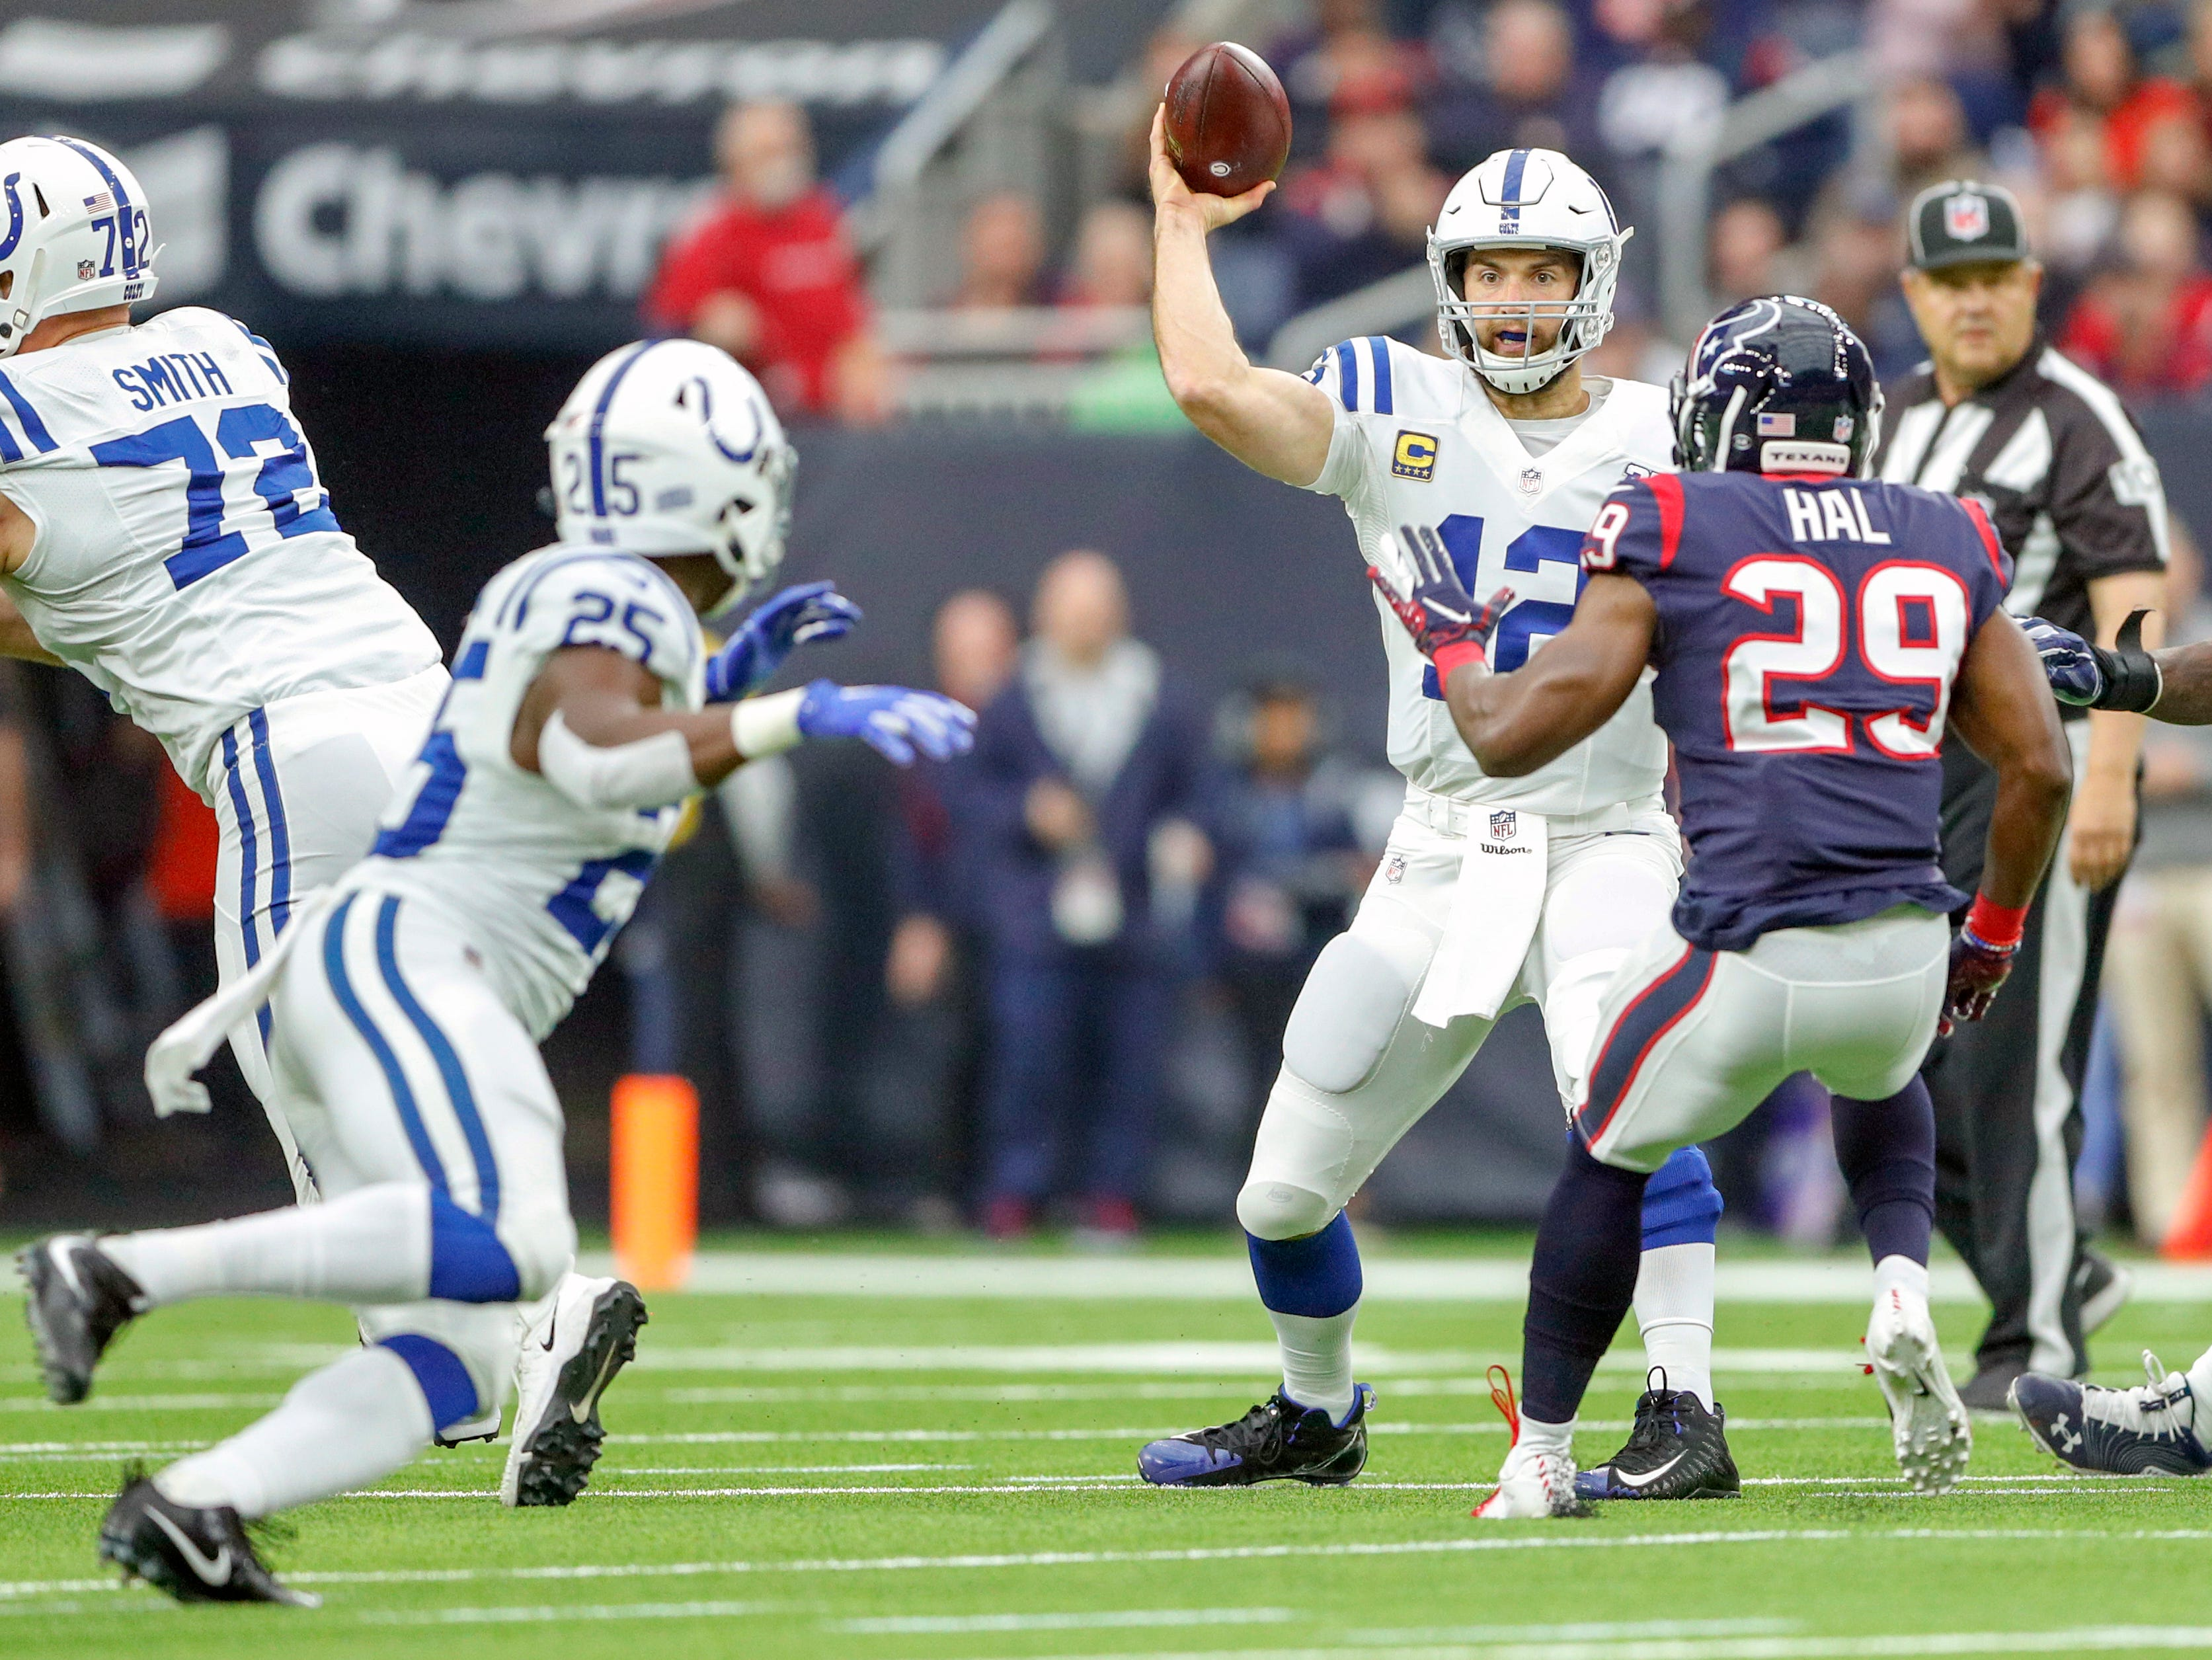 Houston Texans defensive back Andre Hal (29) rushes and is able to knock down a pass to Indianapolis Colts running back Marlon Mack (25) by quarterback Andrew Luck (12) at NRG Stadium in Houston on Sunday, Dec. 9, 2018.